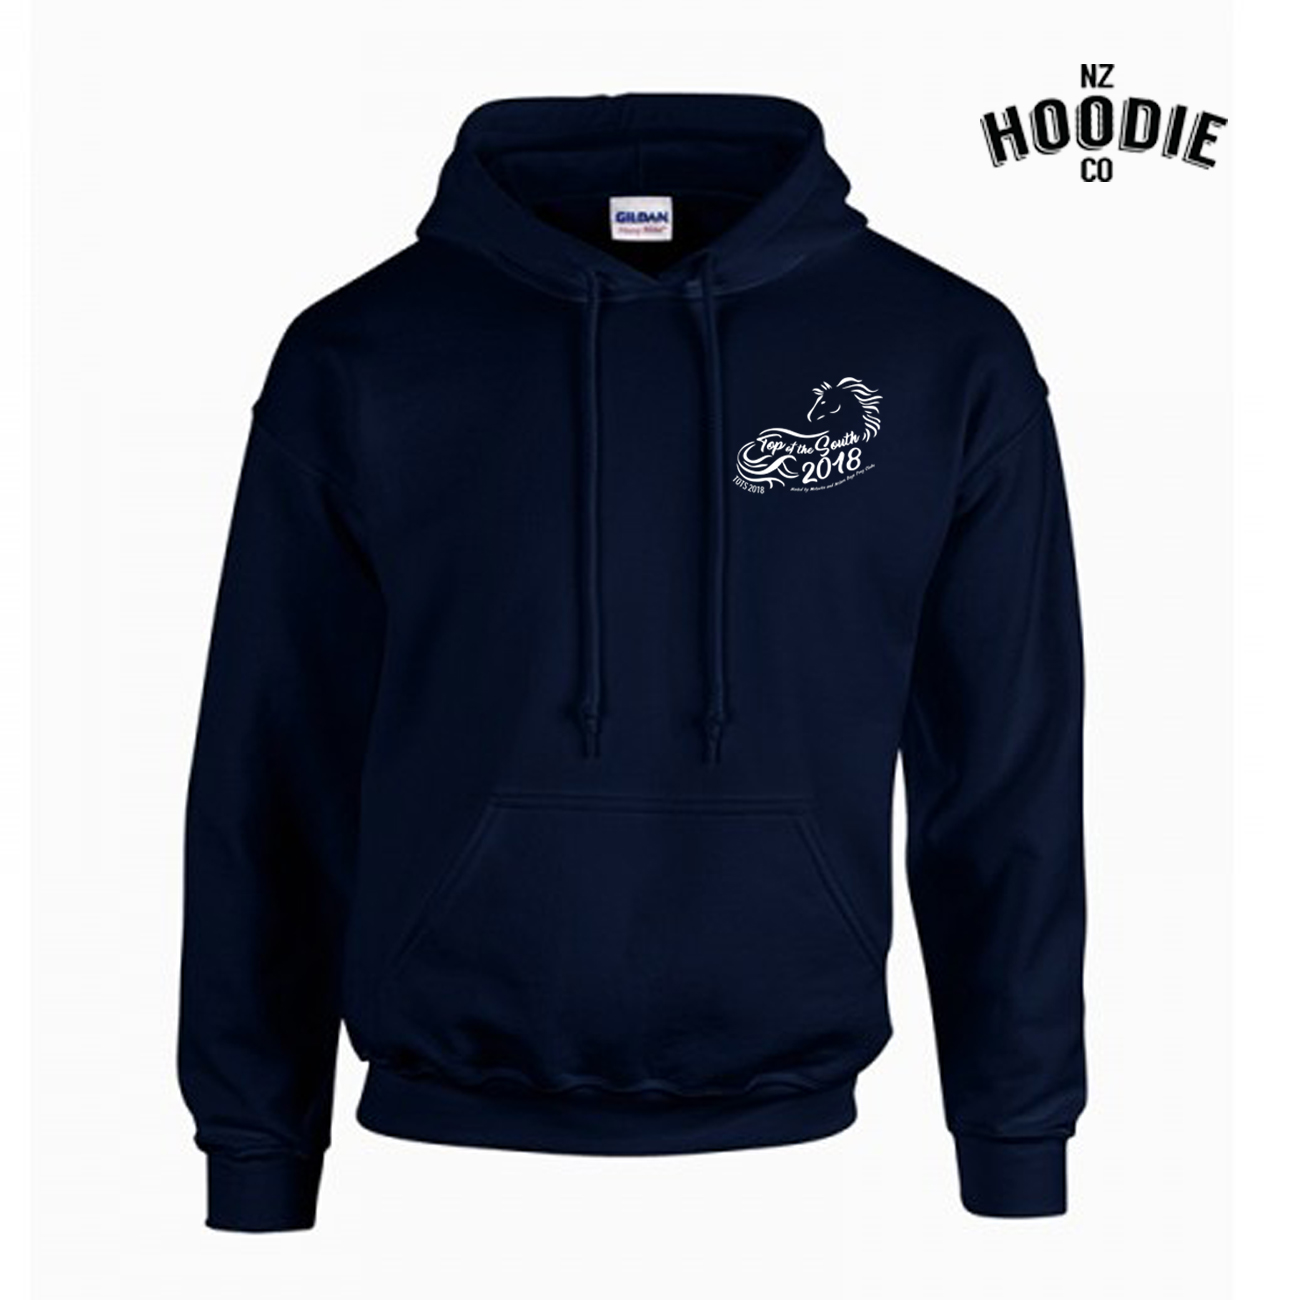 Top of the South navy hoodie FRONT one colour WHITE.jpg